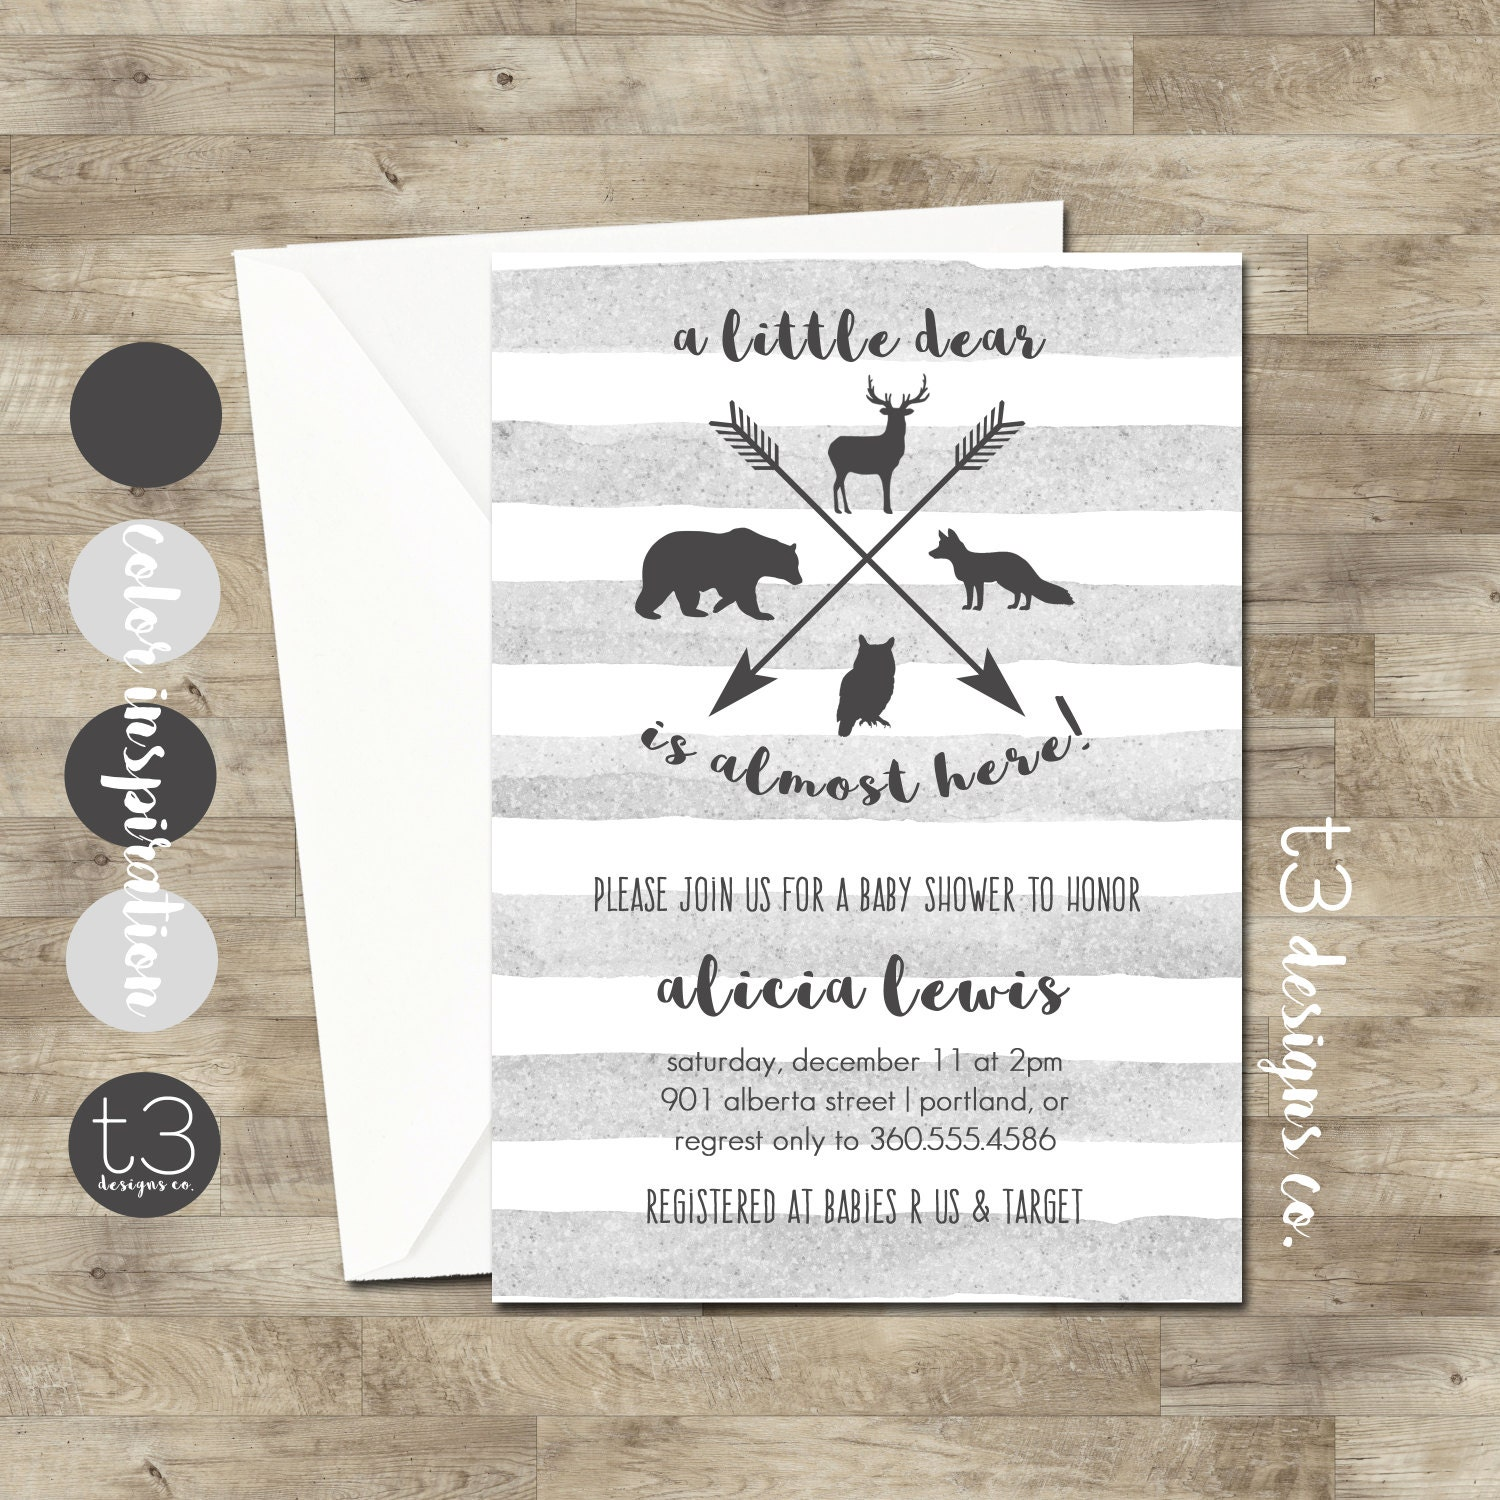 Woodland animal baby shower invitation woodland baby shower forest woodland animal baby shower invitation woodland baby shower forest animal baby shower hunting baby shower forest baby shower filmwisefo